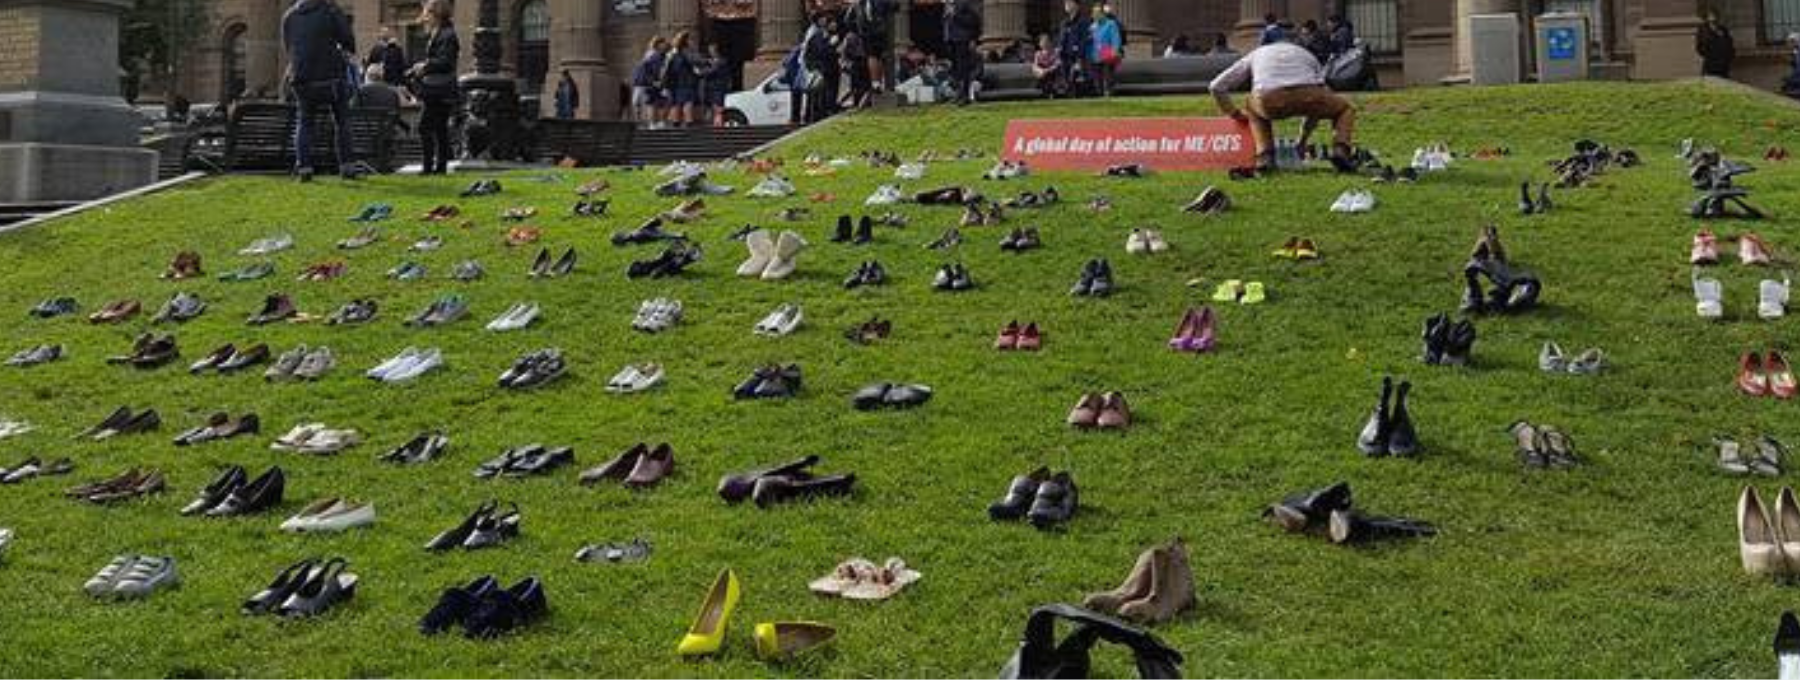 2016 May Awareness #MM shoes melbourne 2016 1800 x 680 shoes only